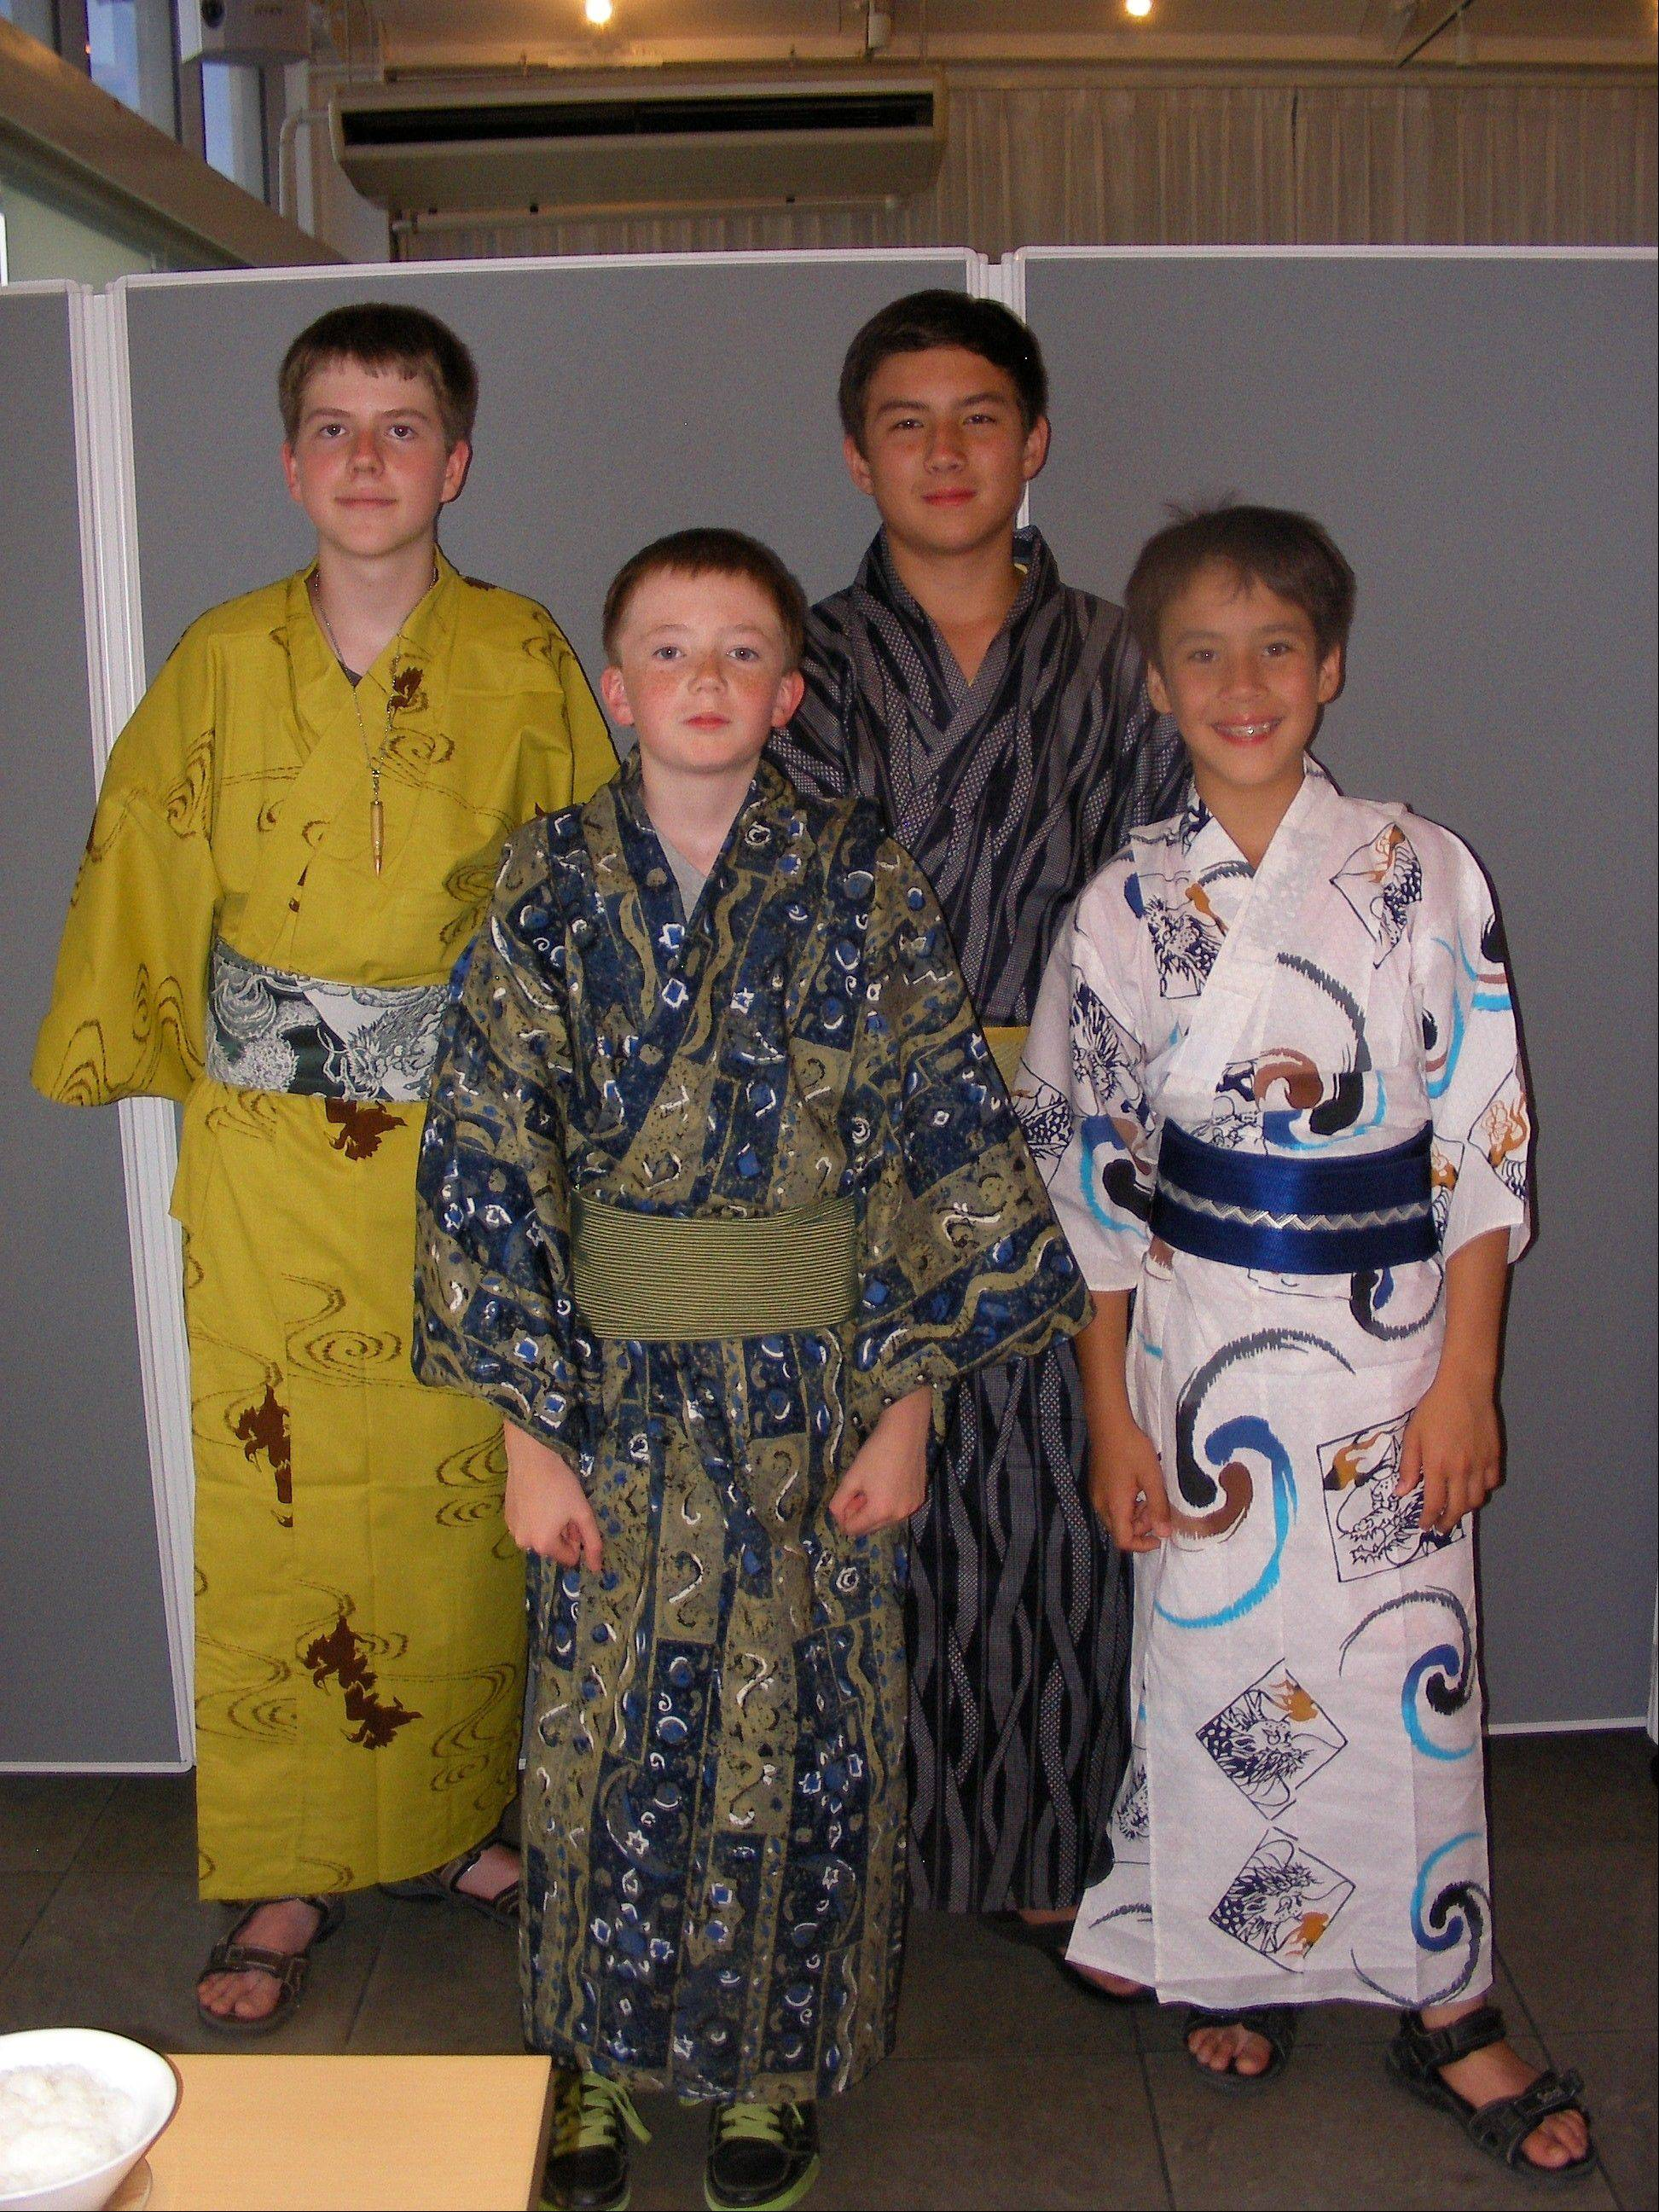 Boys ae in summer yukatas. From left to right, Ian Dwojacki, Brian Quill, Theodore Lietz and Thailer Lietz.